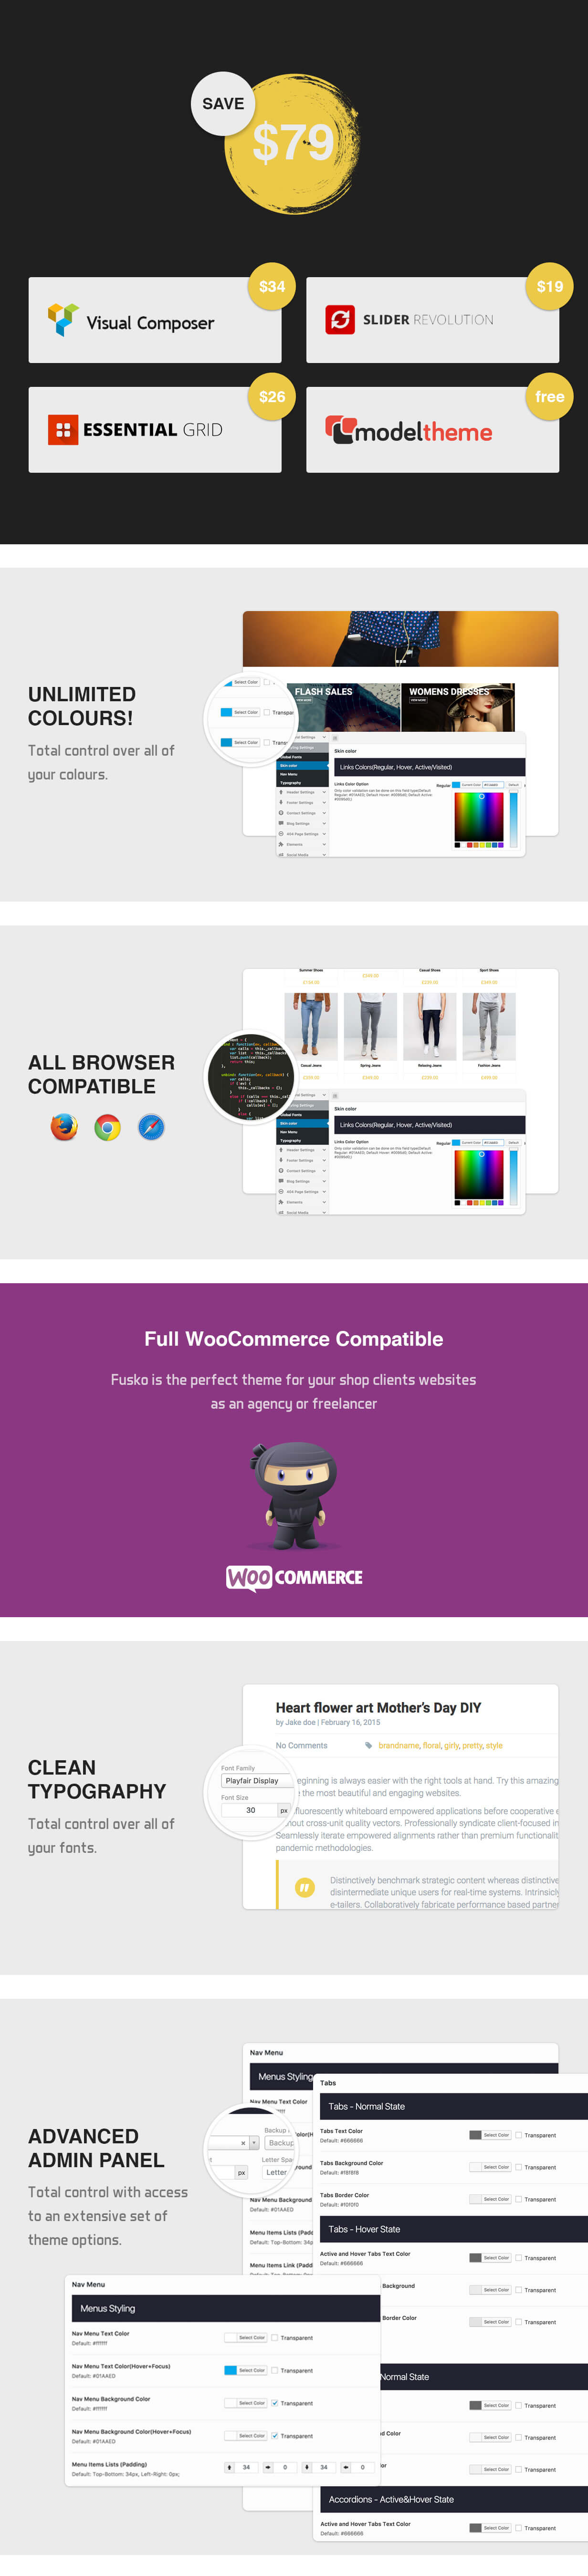 Fusko - Tech/Gadgets WooCommerce WordPress Theme - 5